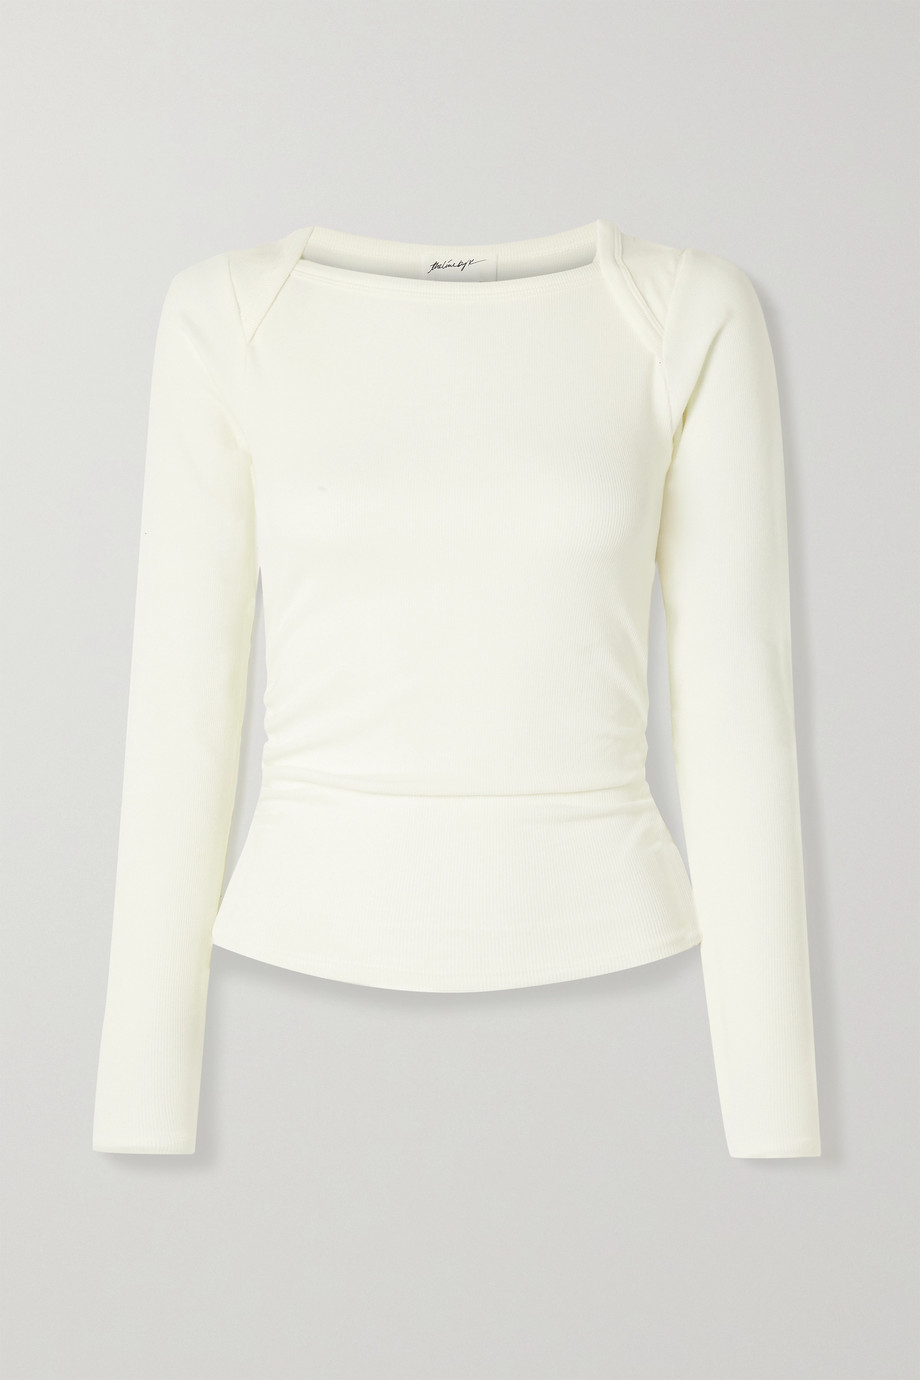 THE LINE BY K Becks ruched ribbed stretch-jersey top